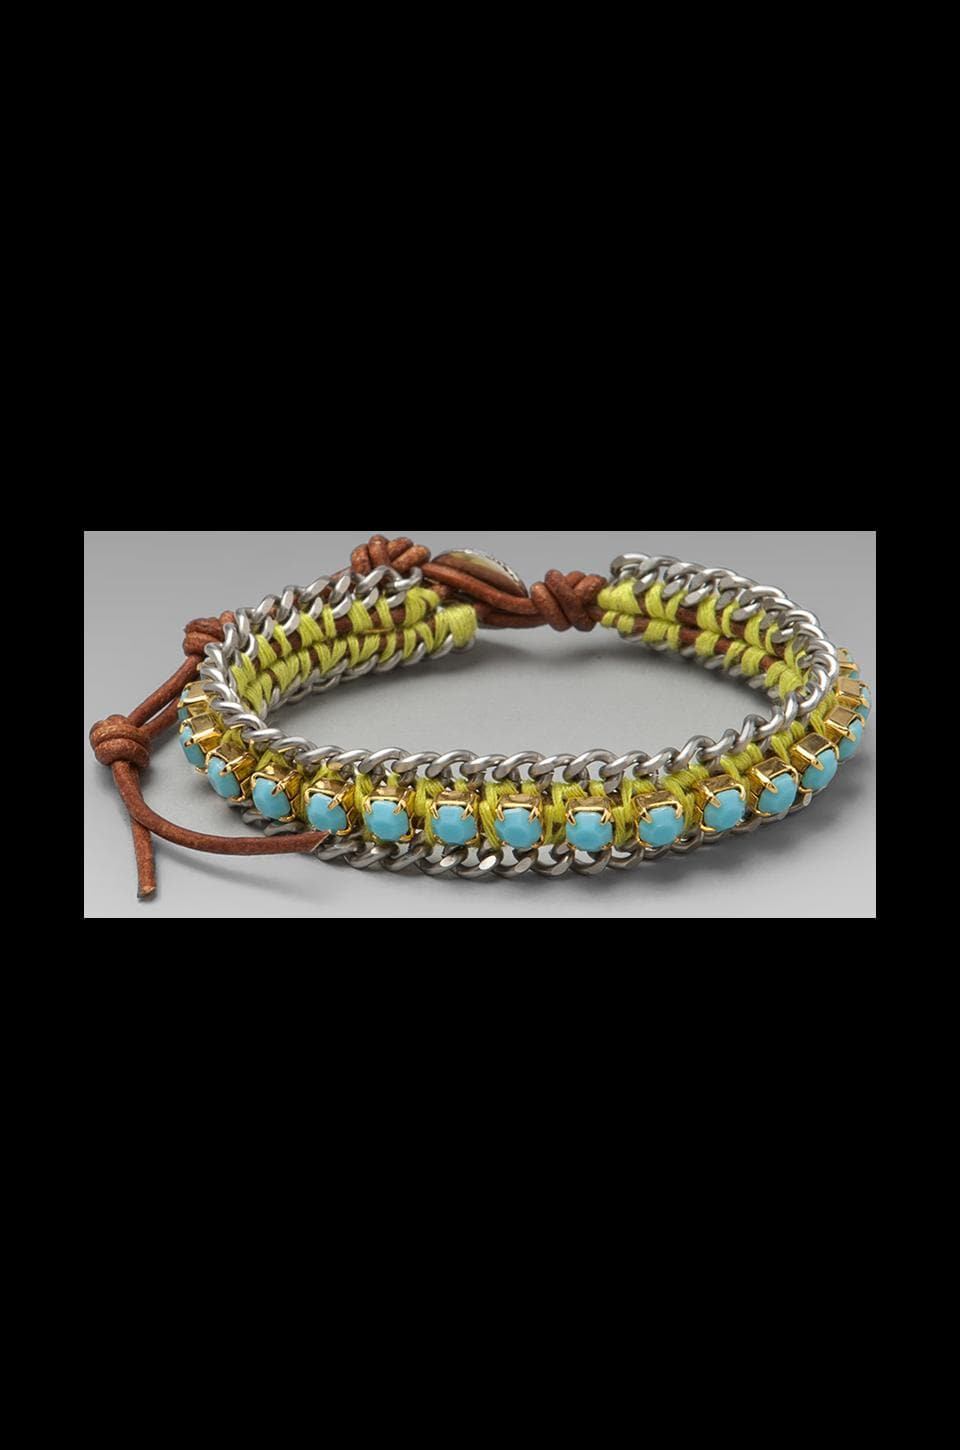 CHAN LUU Rhinestone Bracelet in Turquoise/Natural Brown